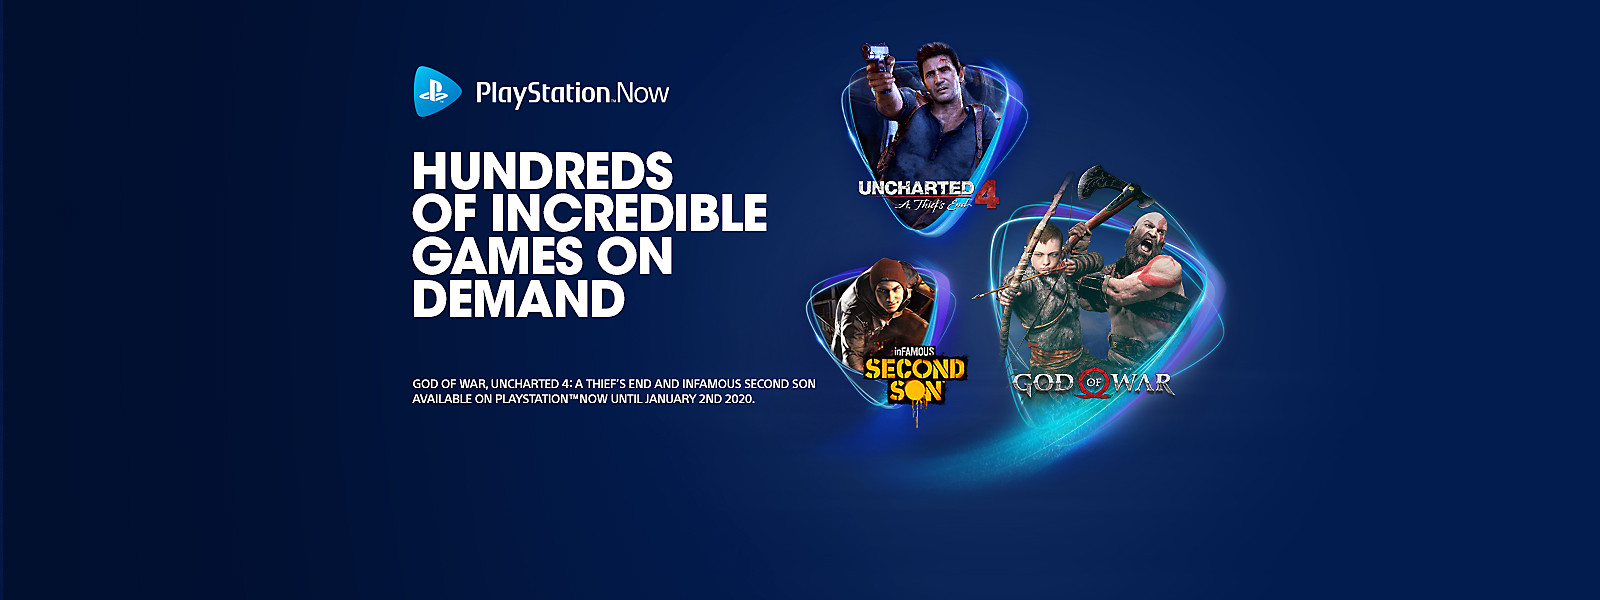 PlayStation Now - Hundreds of Incredible Games On Demand